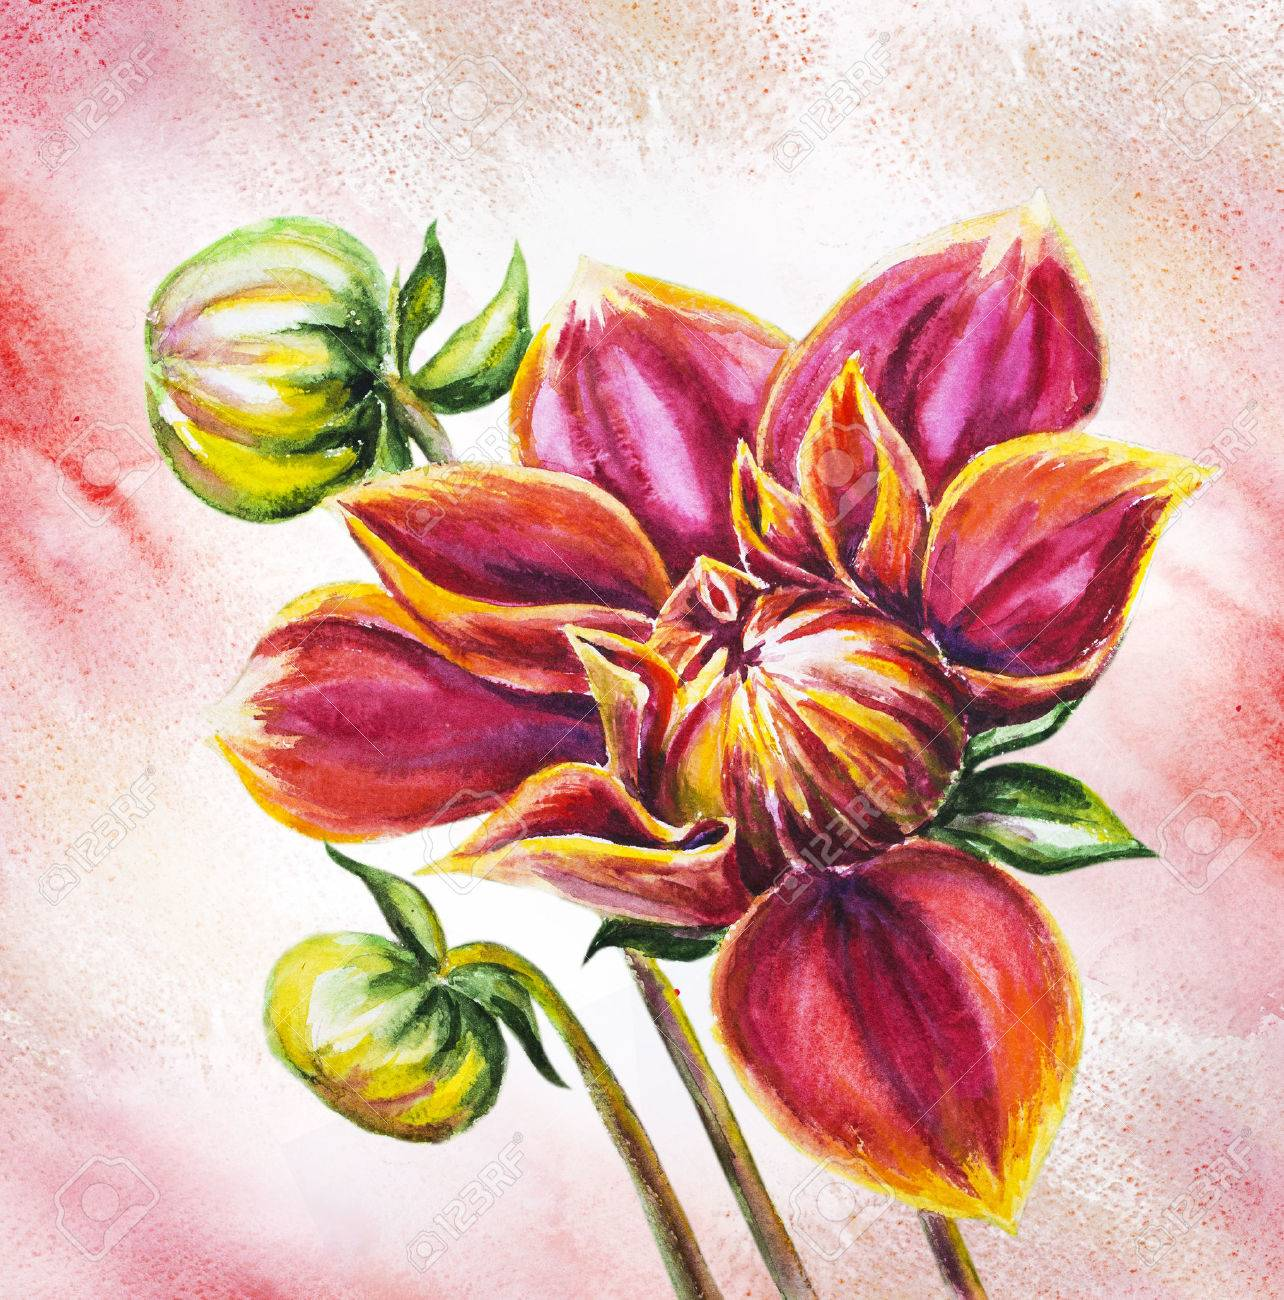 Blooming Dahlia Flower Watercolor Painting Stock Photo Picture And Royalty Free Image Image 22449904